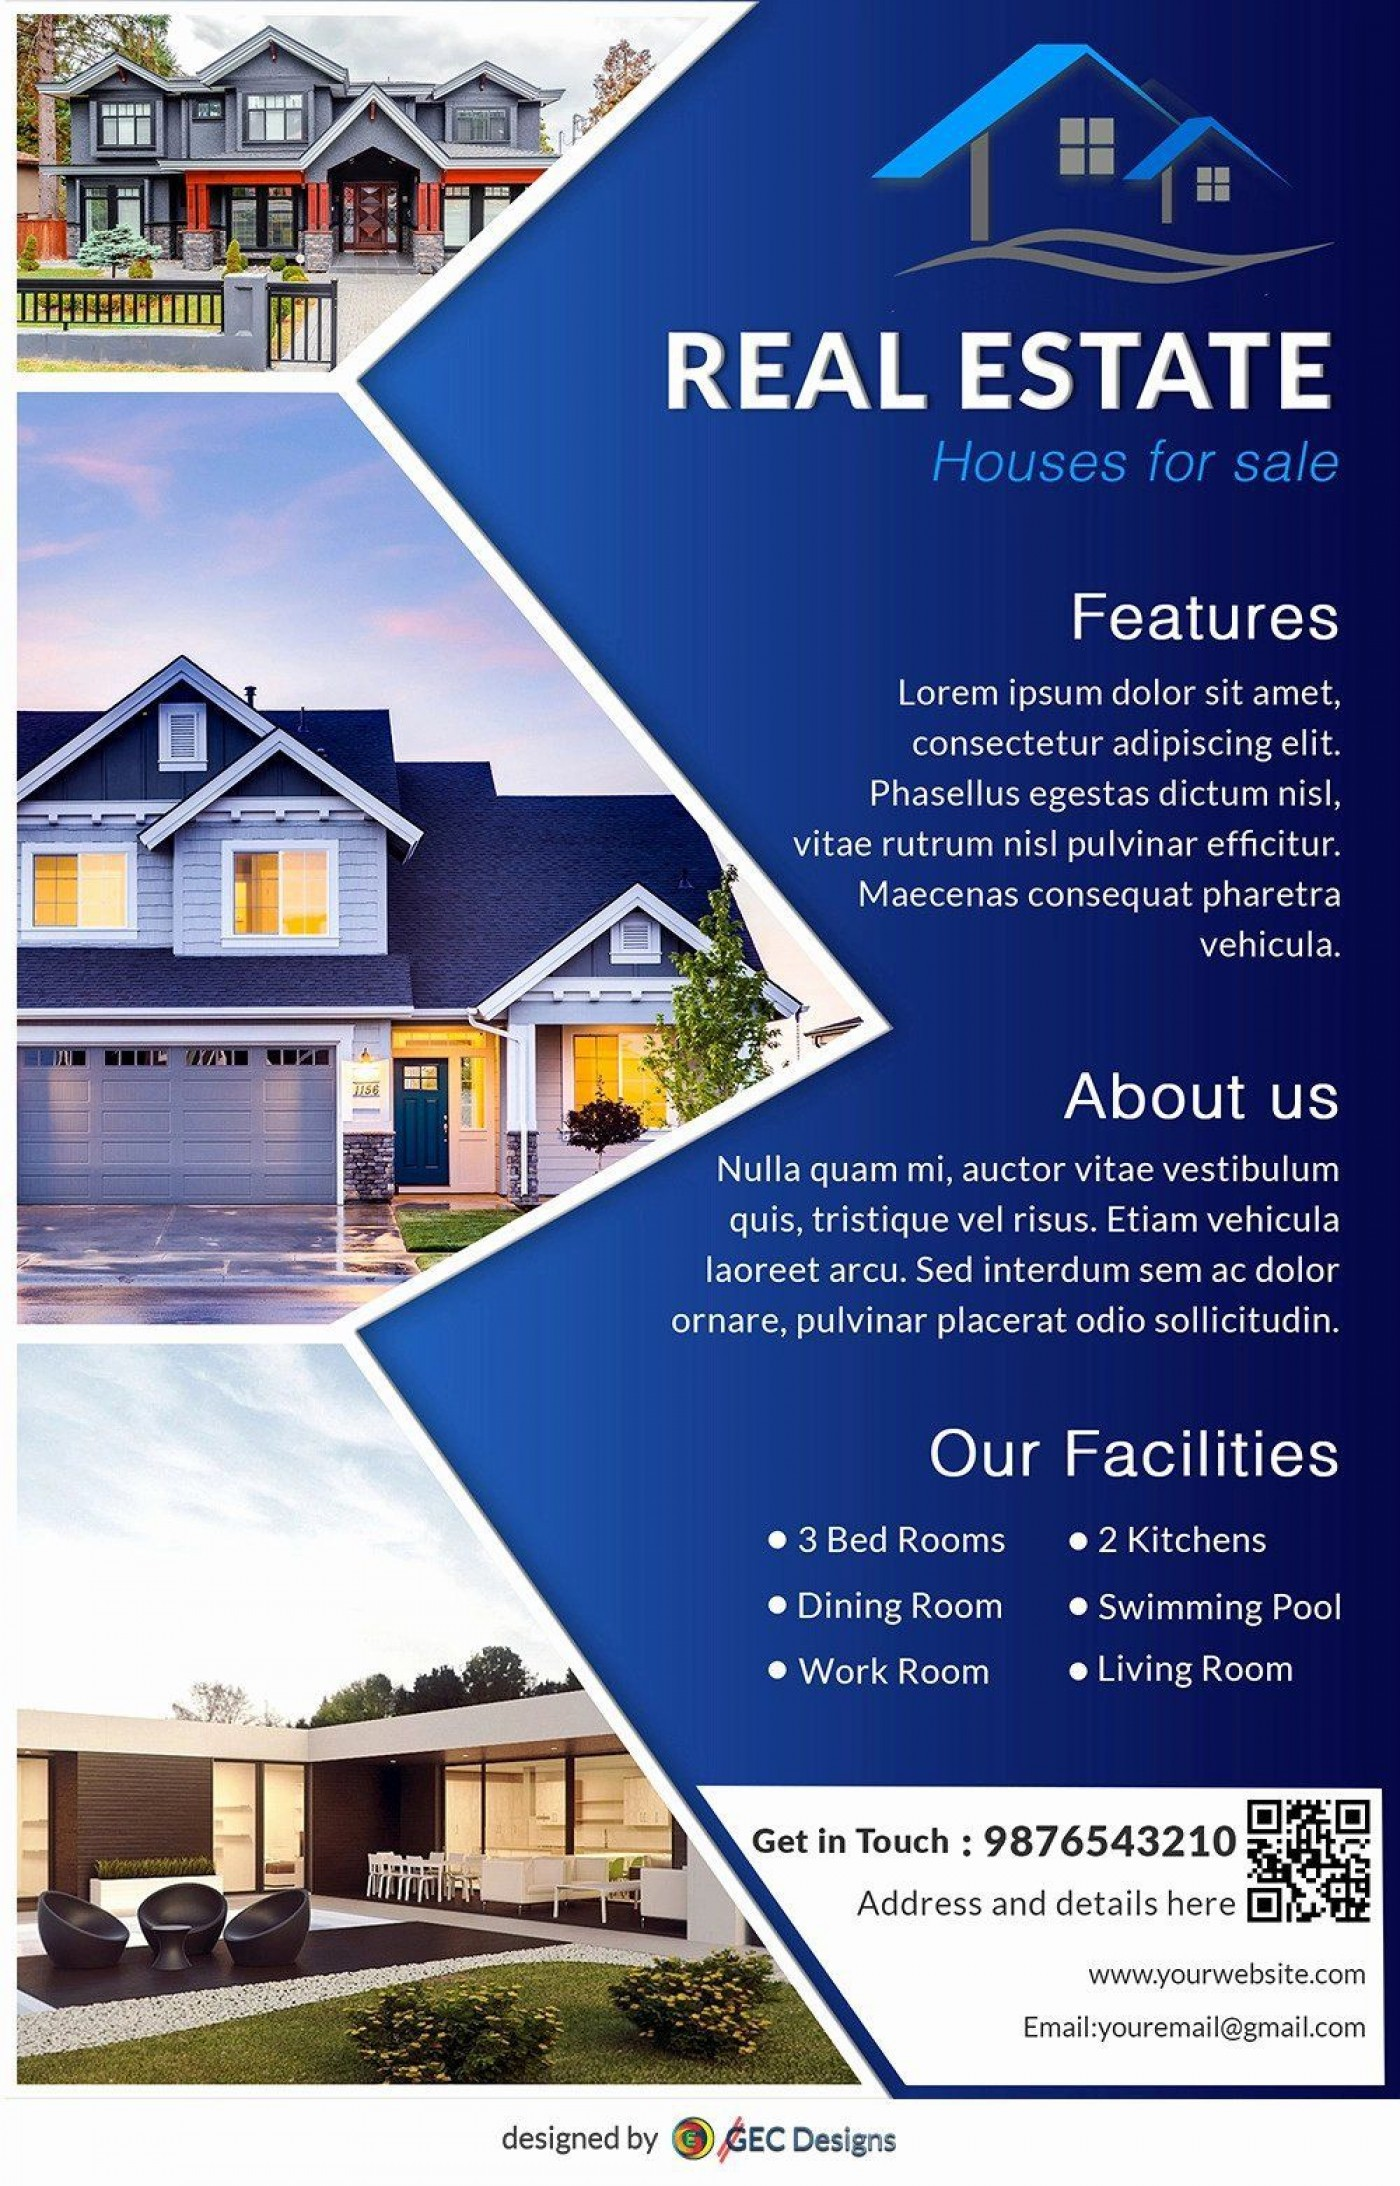 001 Top House For Sale Flyer Template Inspiration  Free Real Estate Example By Owner1400